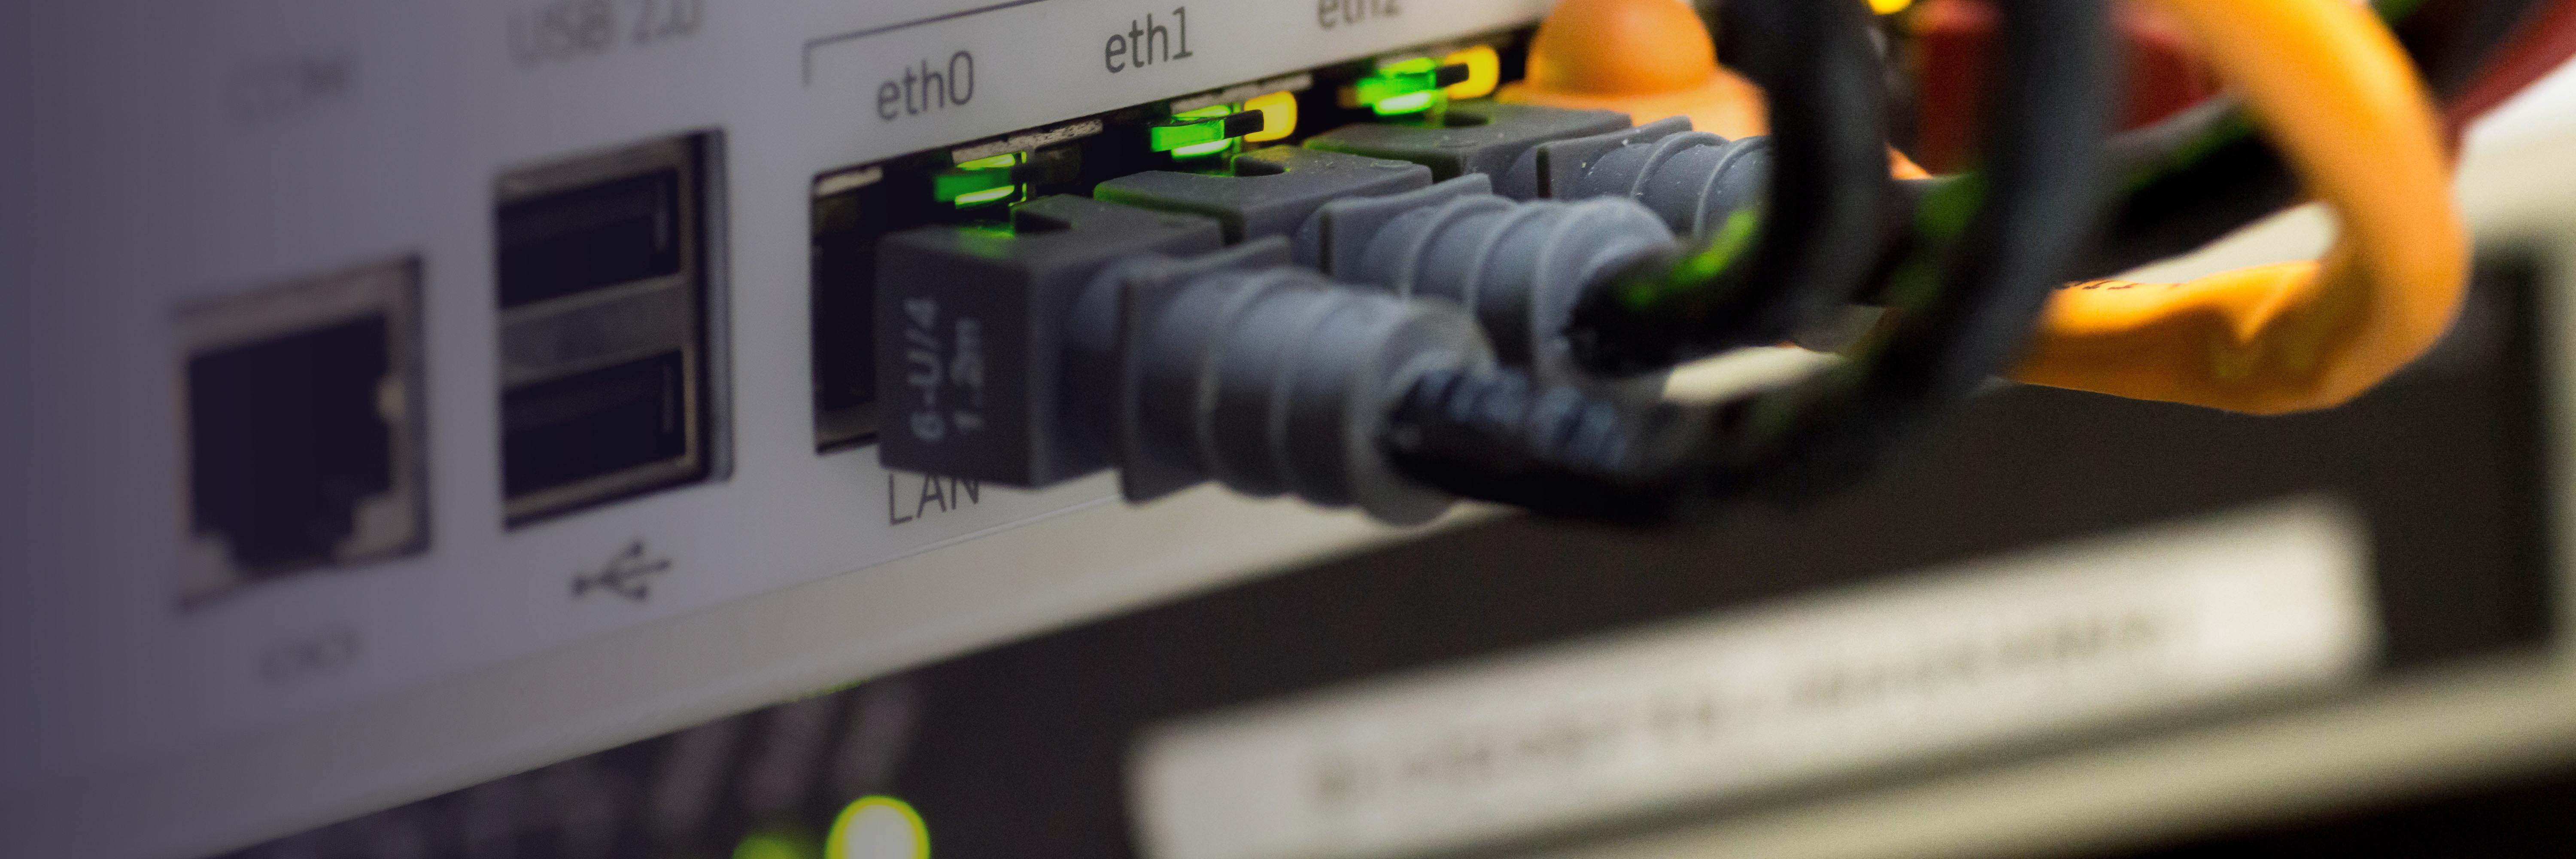 Get the most out of your WiFi router